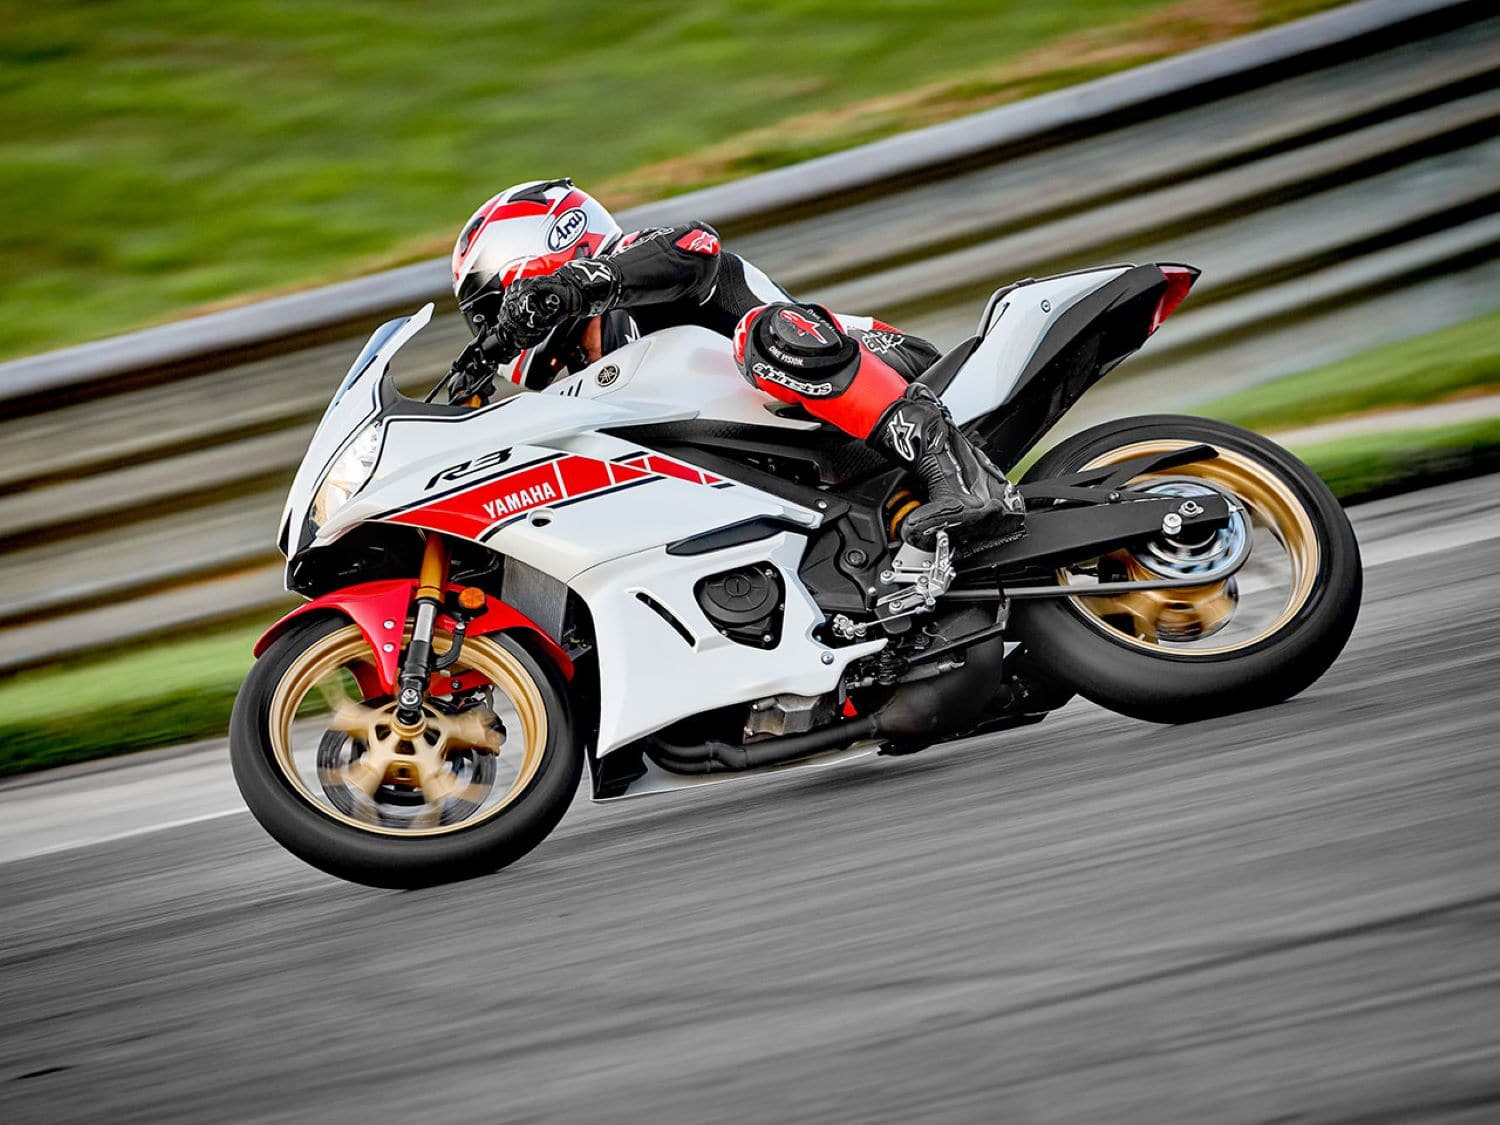 2022 YZF-R3SP 60th Anniversary Special Edition Livery